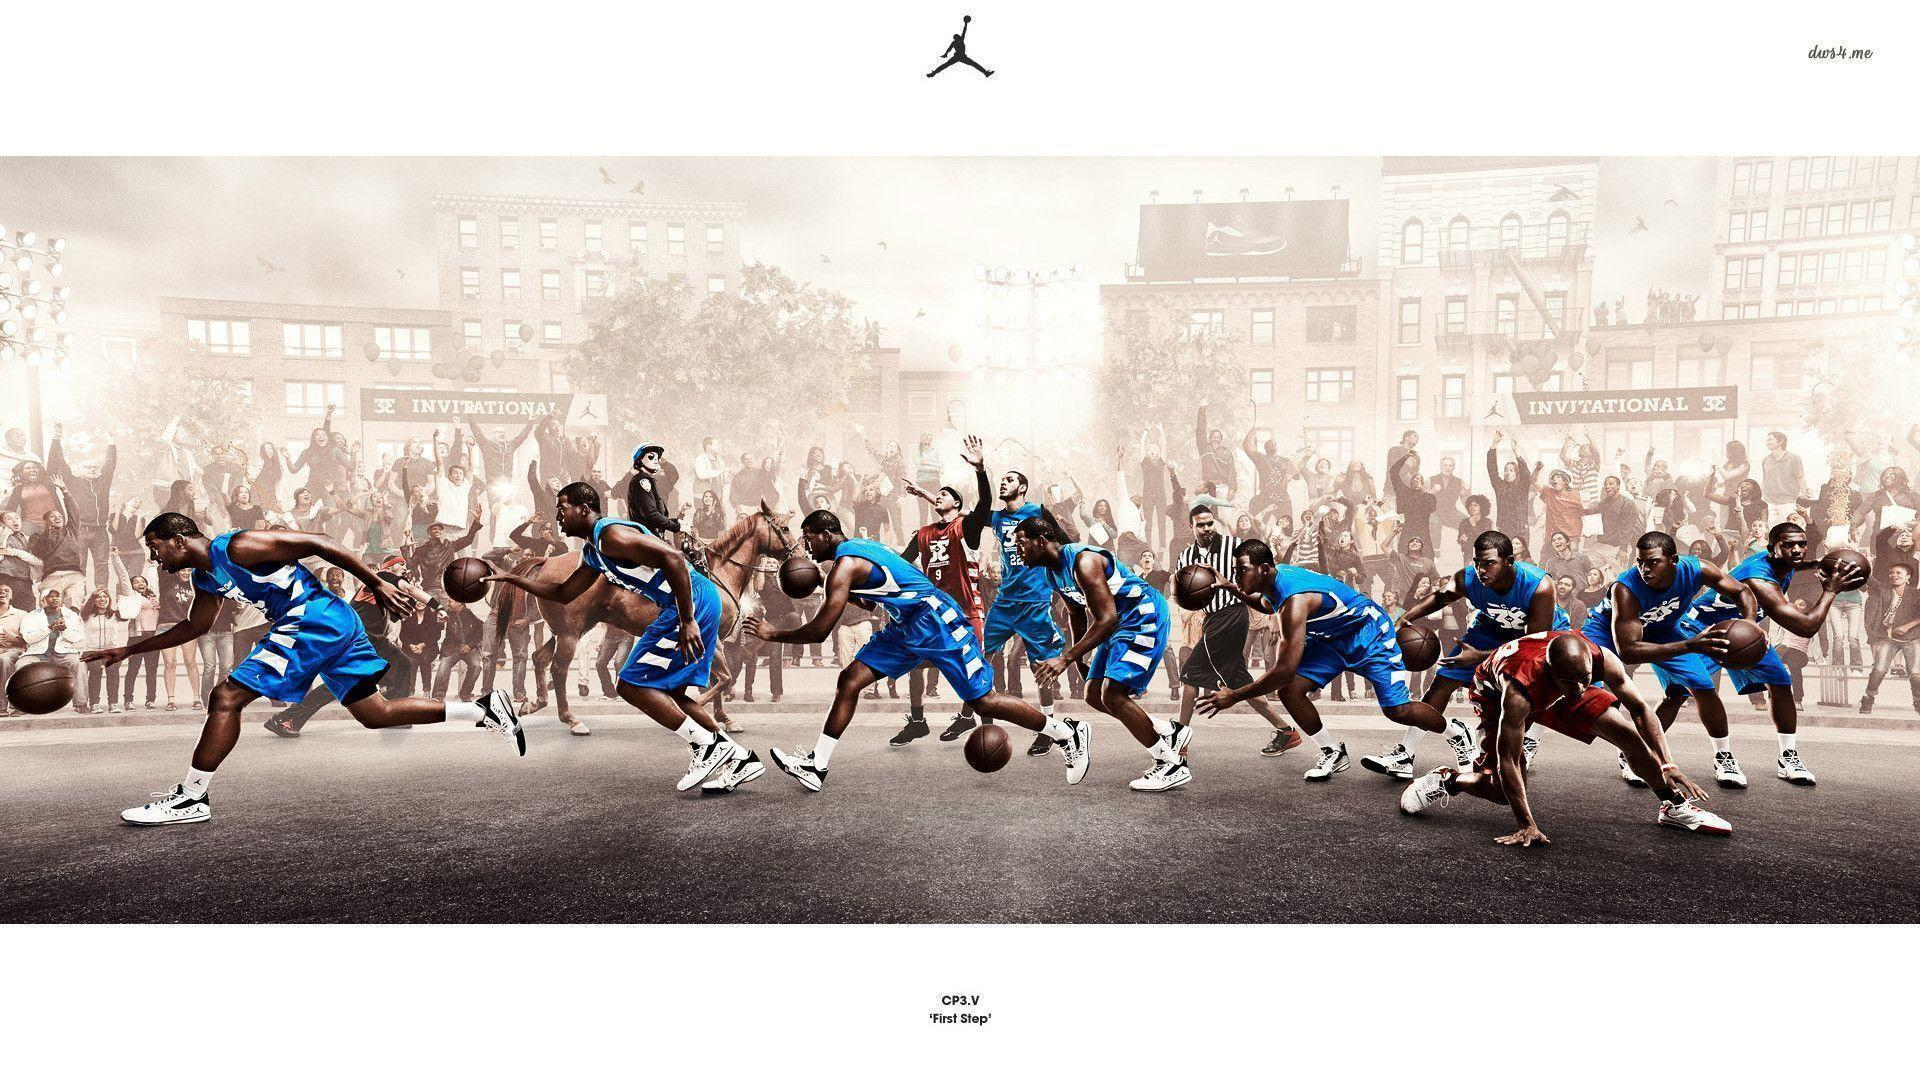 Sport Wallpaper Shoes Outlet: Jordan Desktop Wallpapers